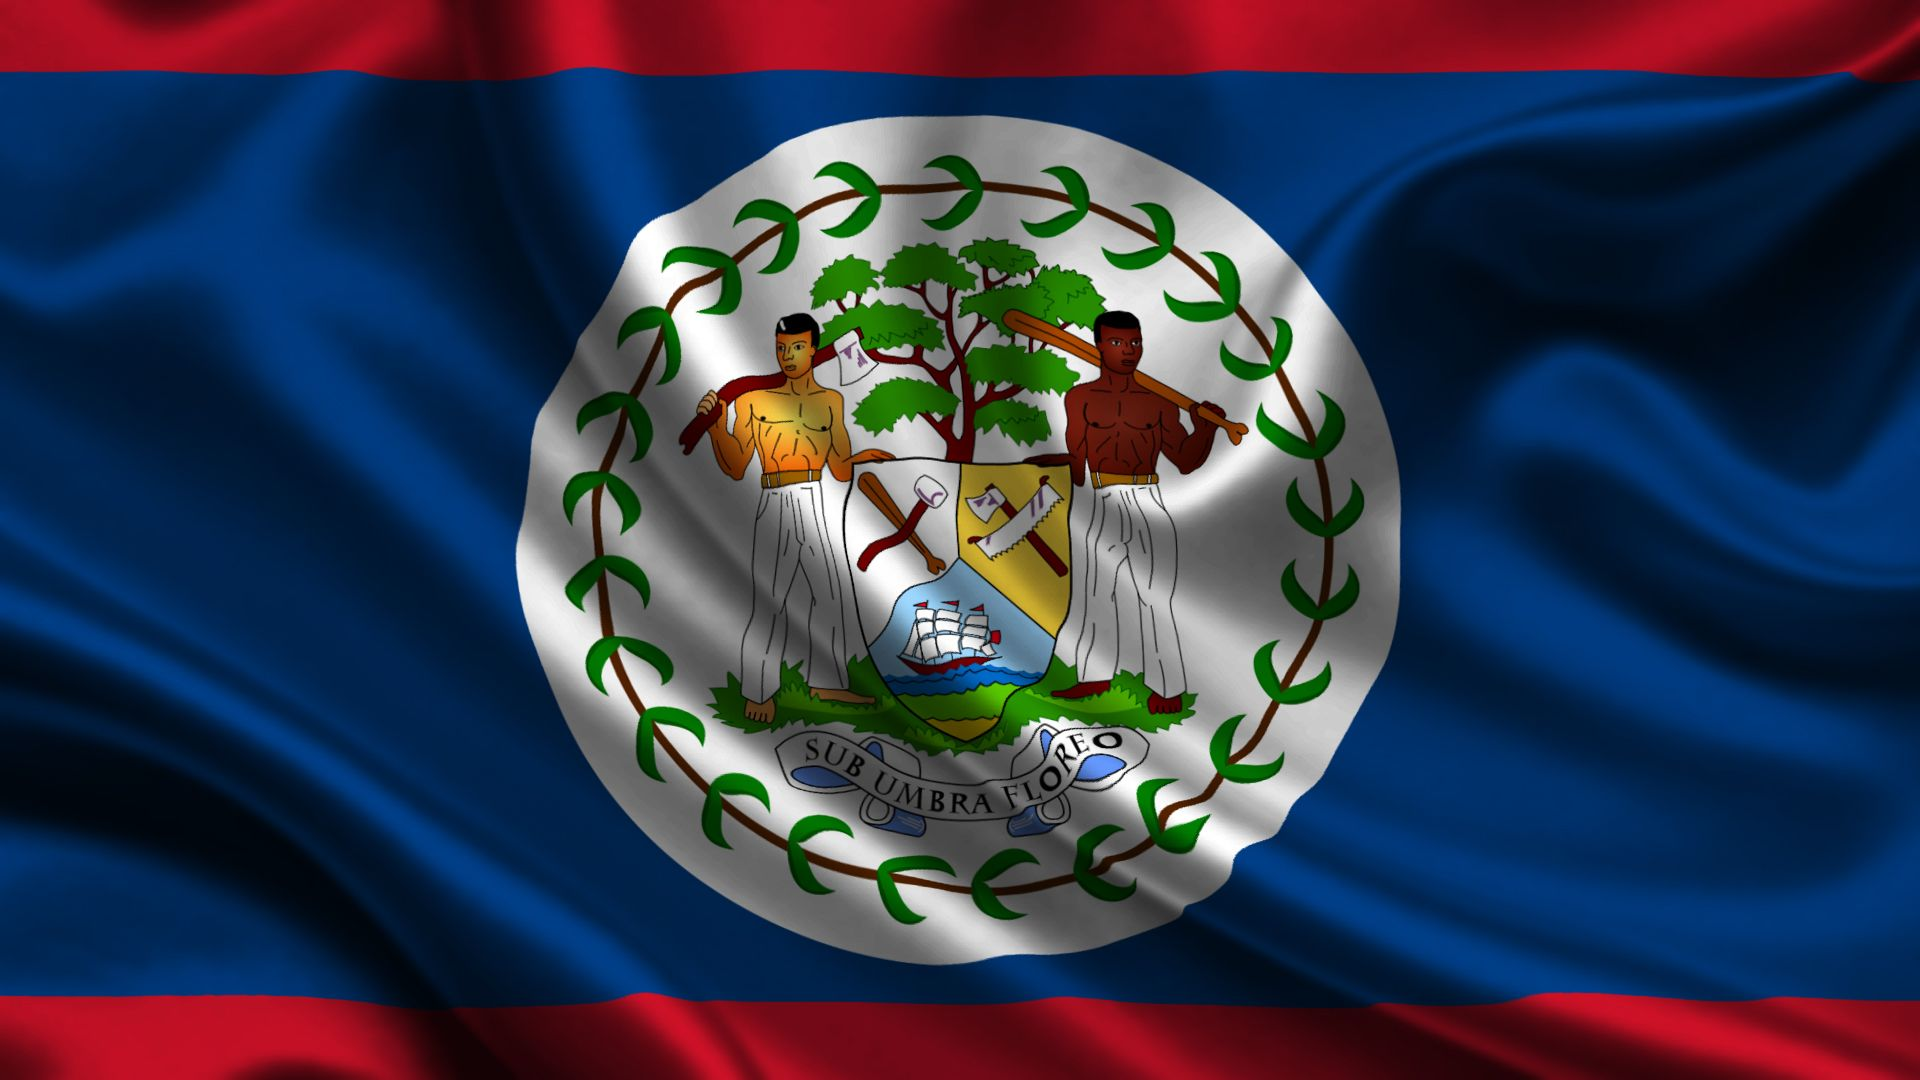 Belize flag grand old flag digital salutations home belize flag grand old flag digital salutations home pinterest belize flag and belize biocorpaavc Image collections